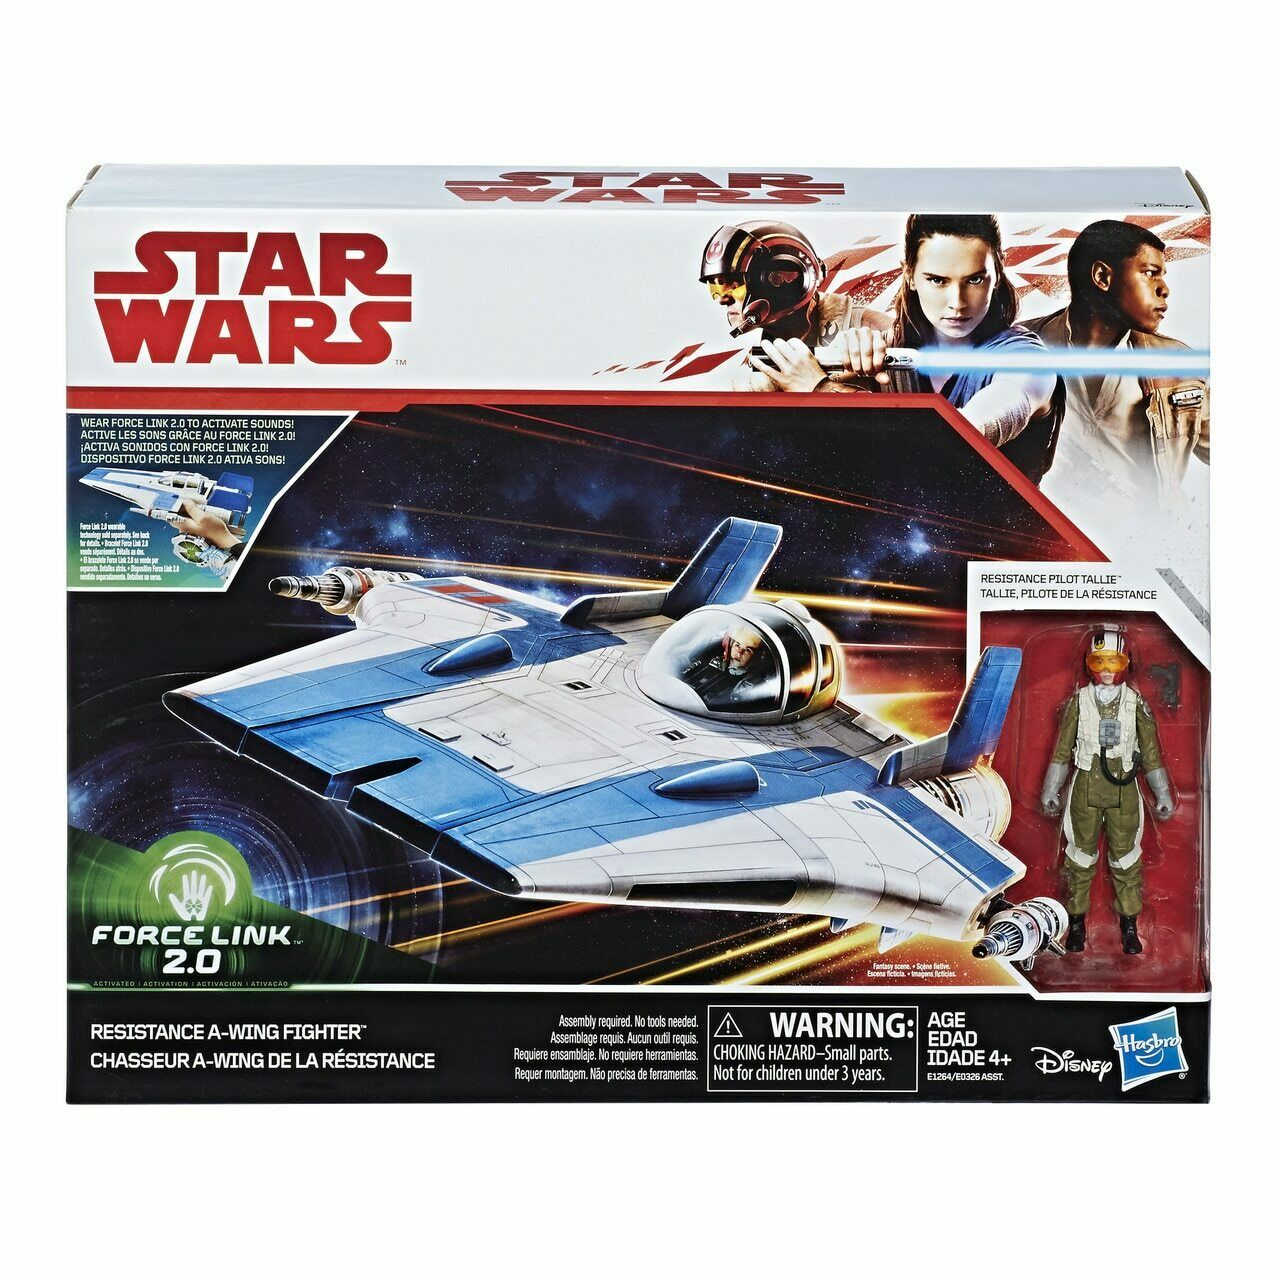 Star Wars Force Link 2.0 Resistance A-wing Fighter & Pilot Tallie Figure Toy Kid